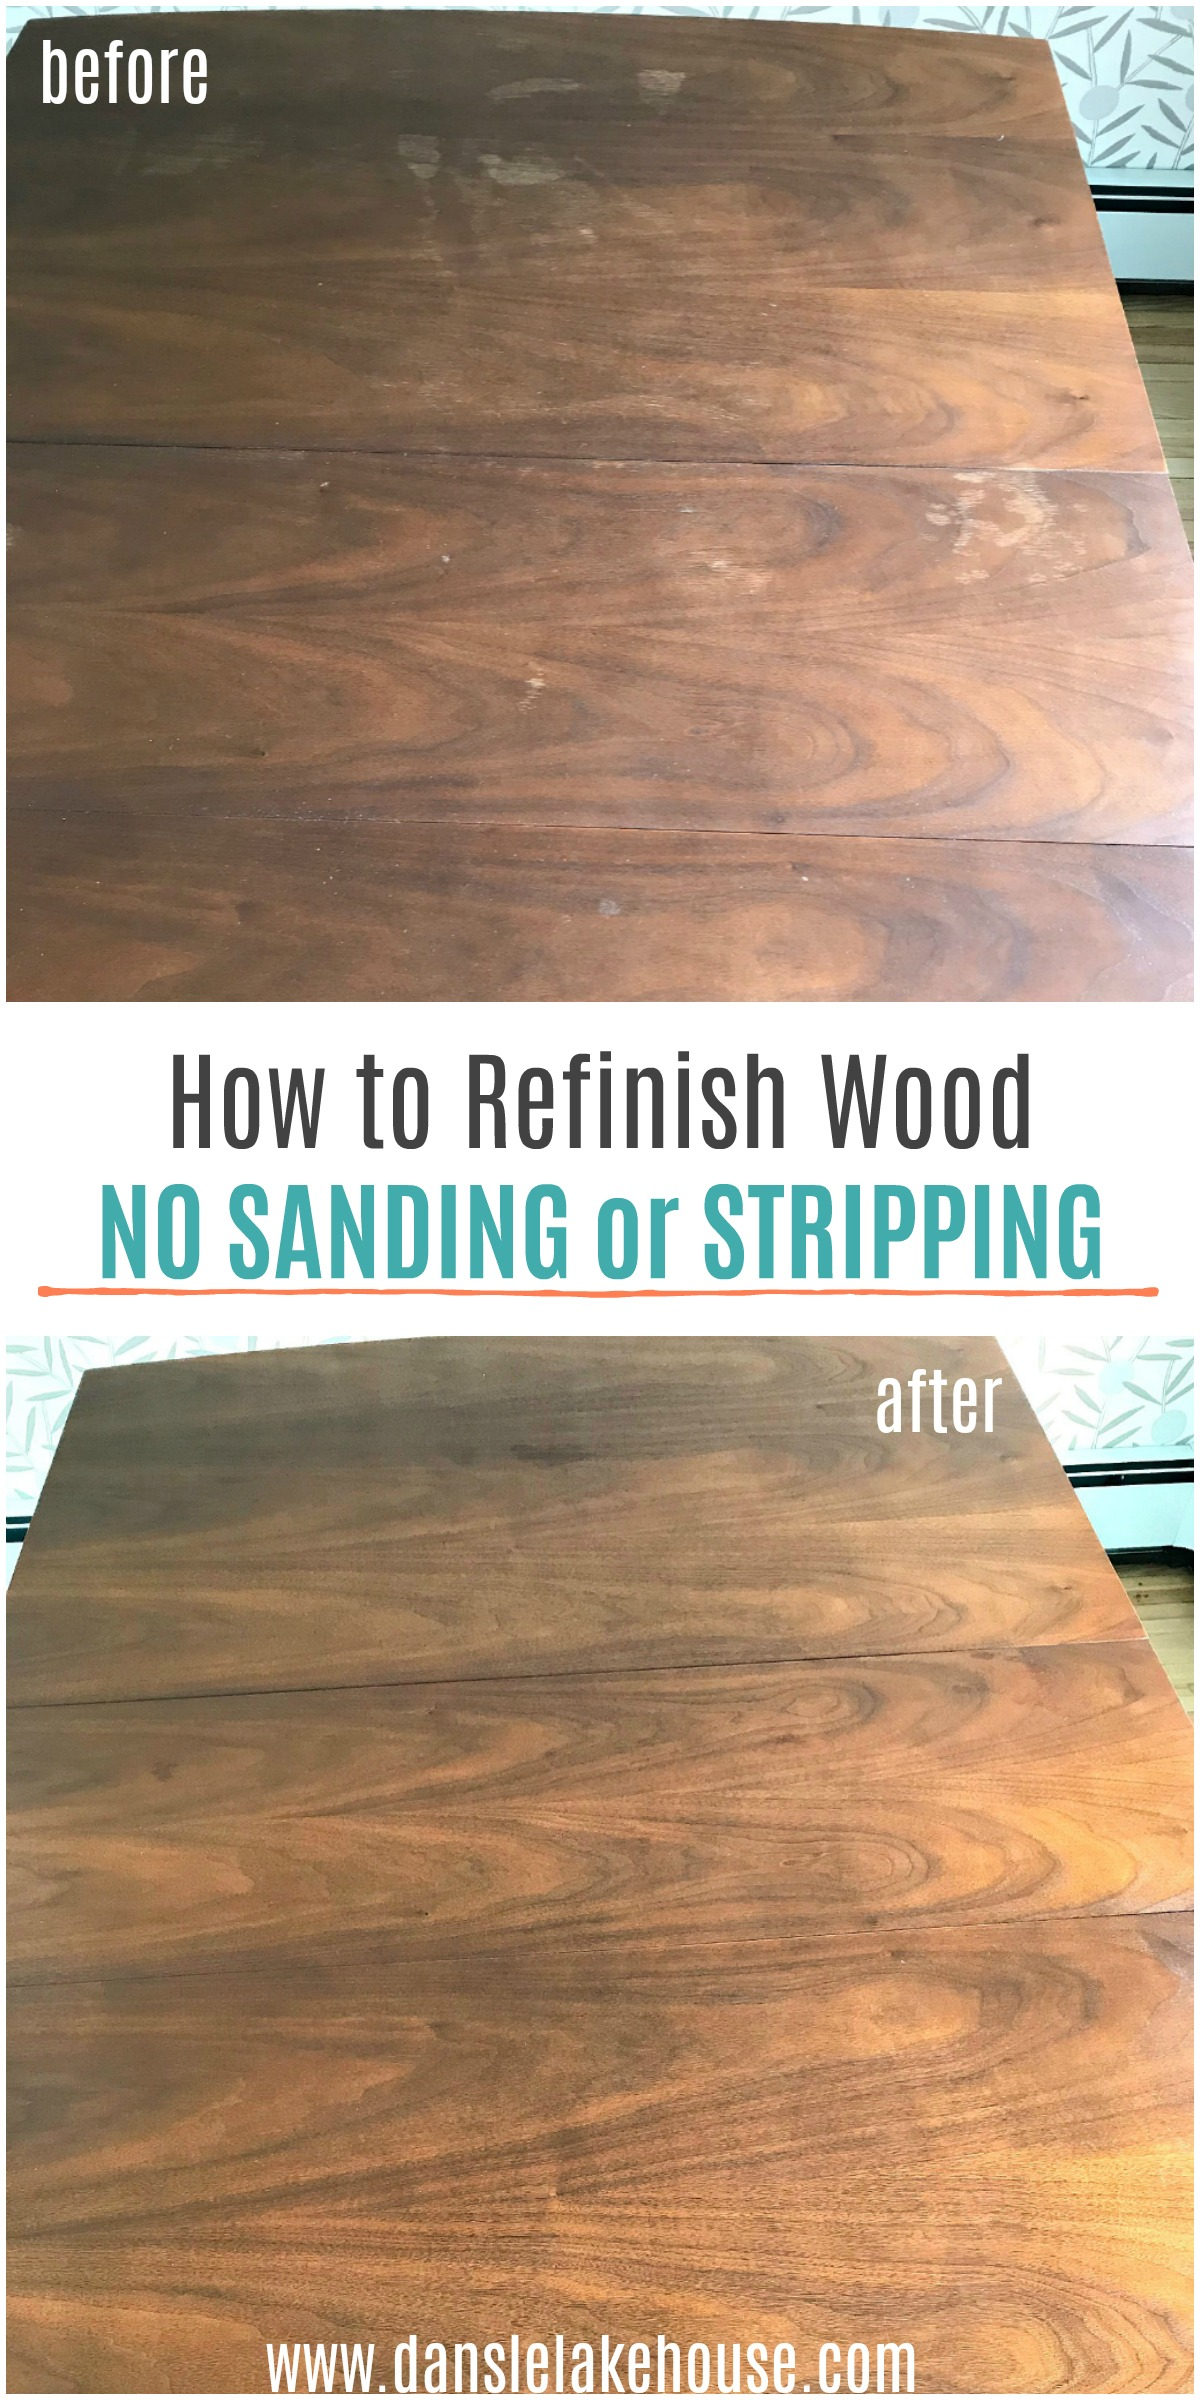 How to Refinish Wood without Sanding or Stripping